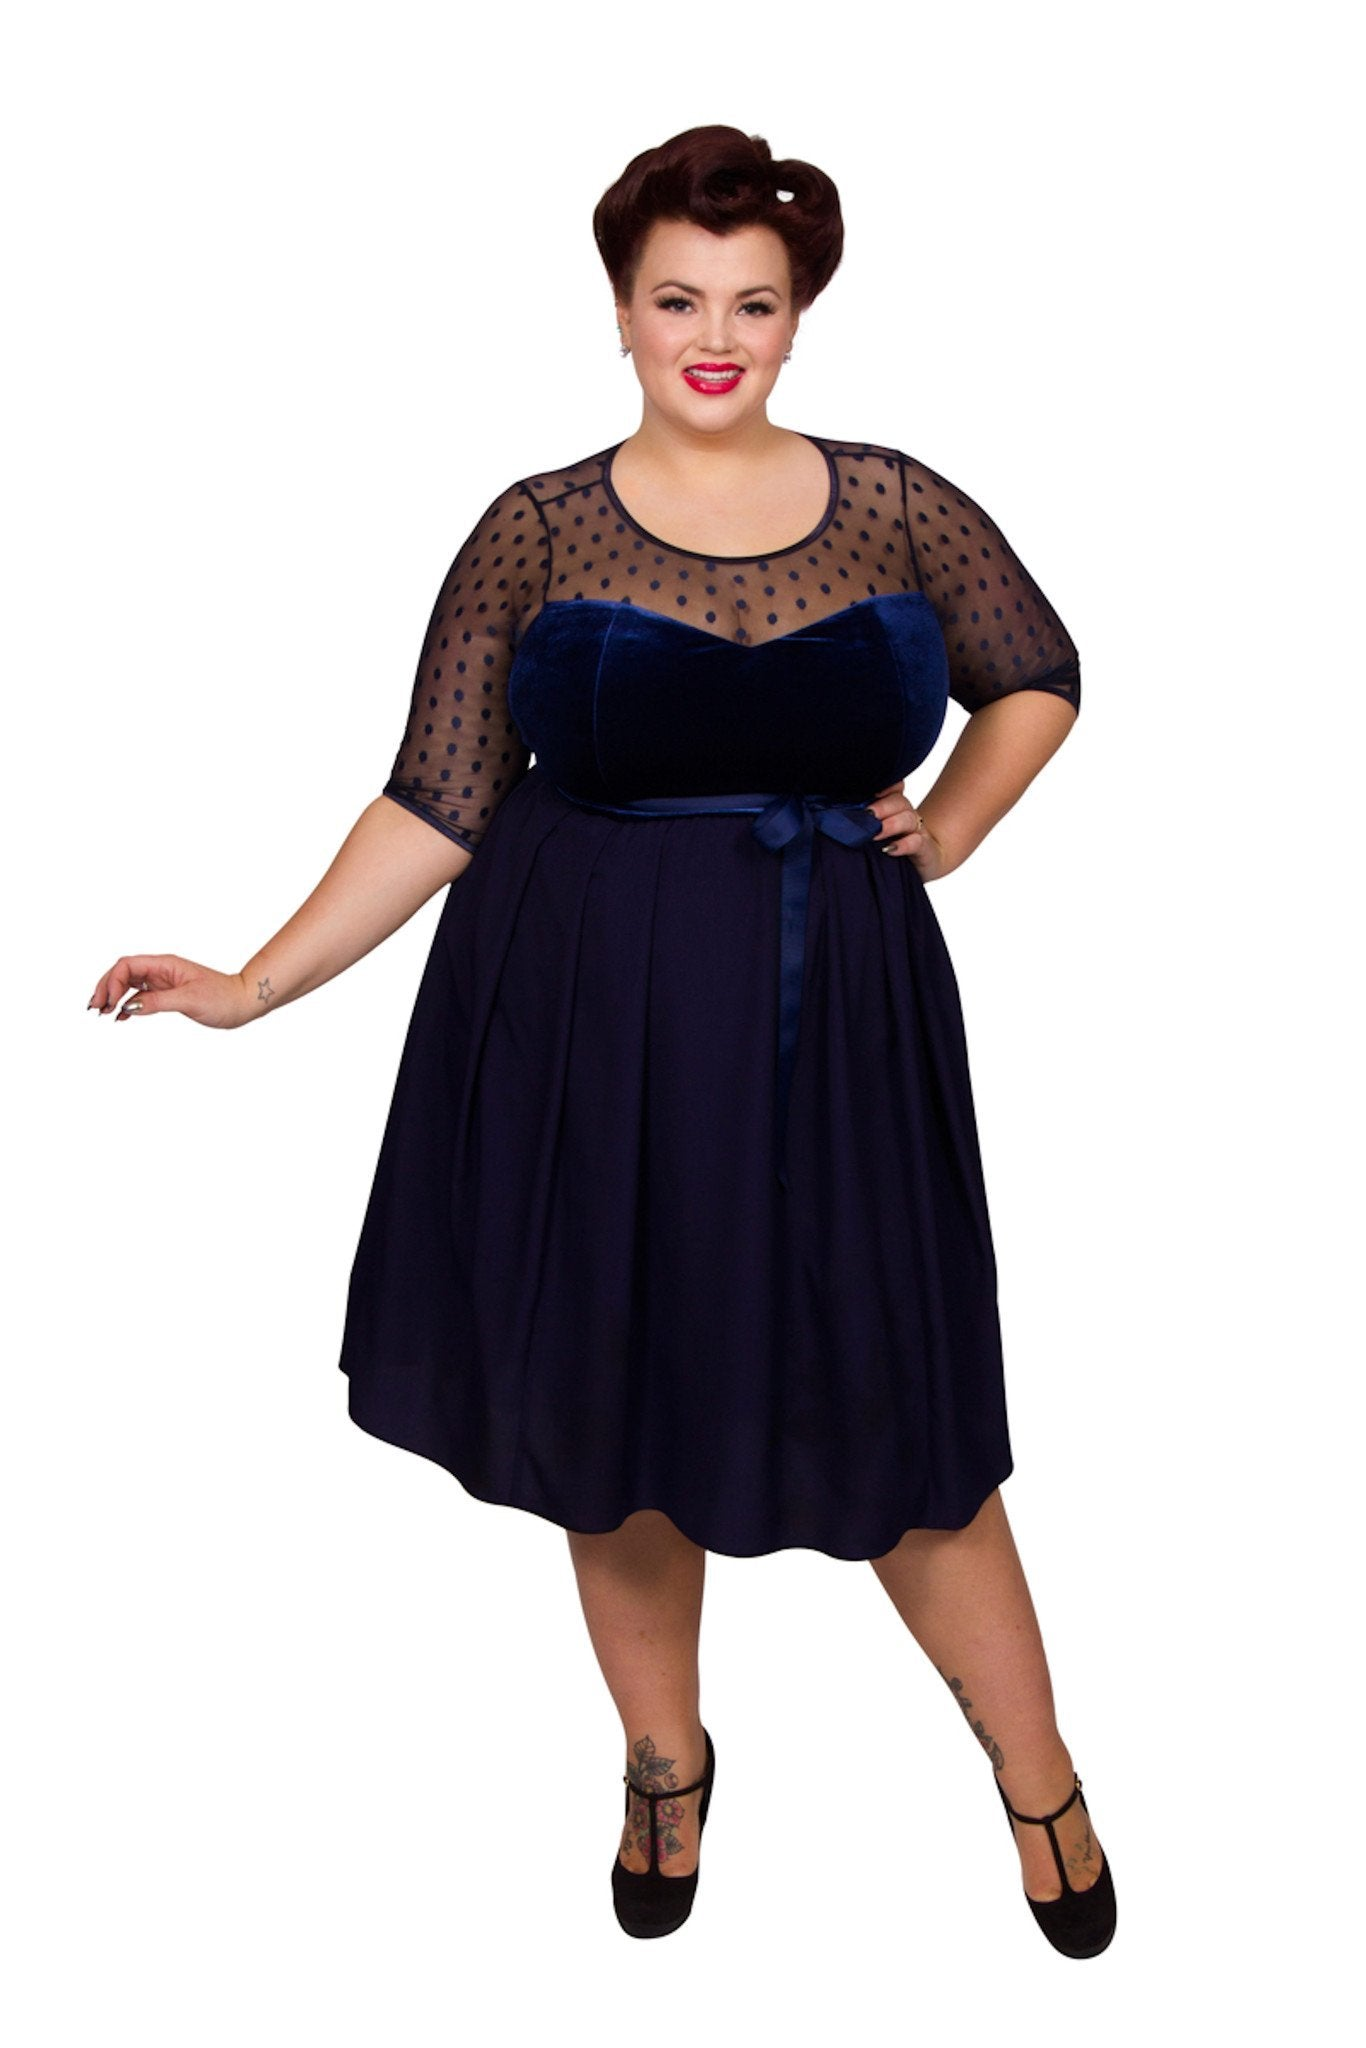 Swing Dance Clothing You Can Dance In Vintage Fairytale Dress - Midnight  26 £70.00 AT vintagedancer.com